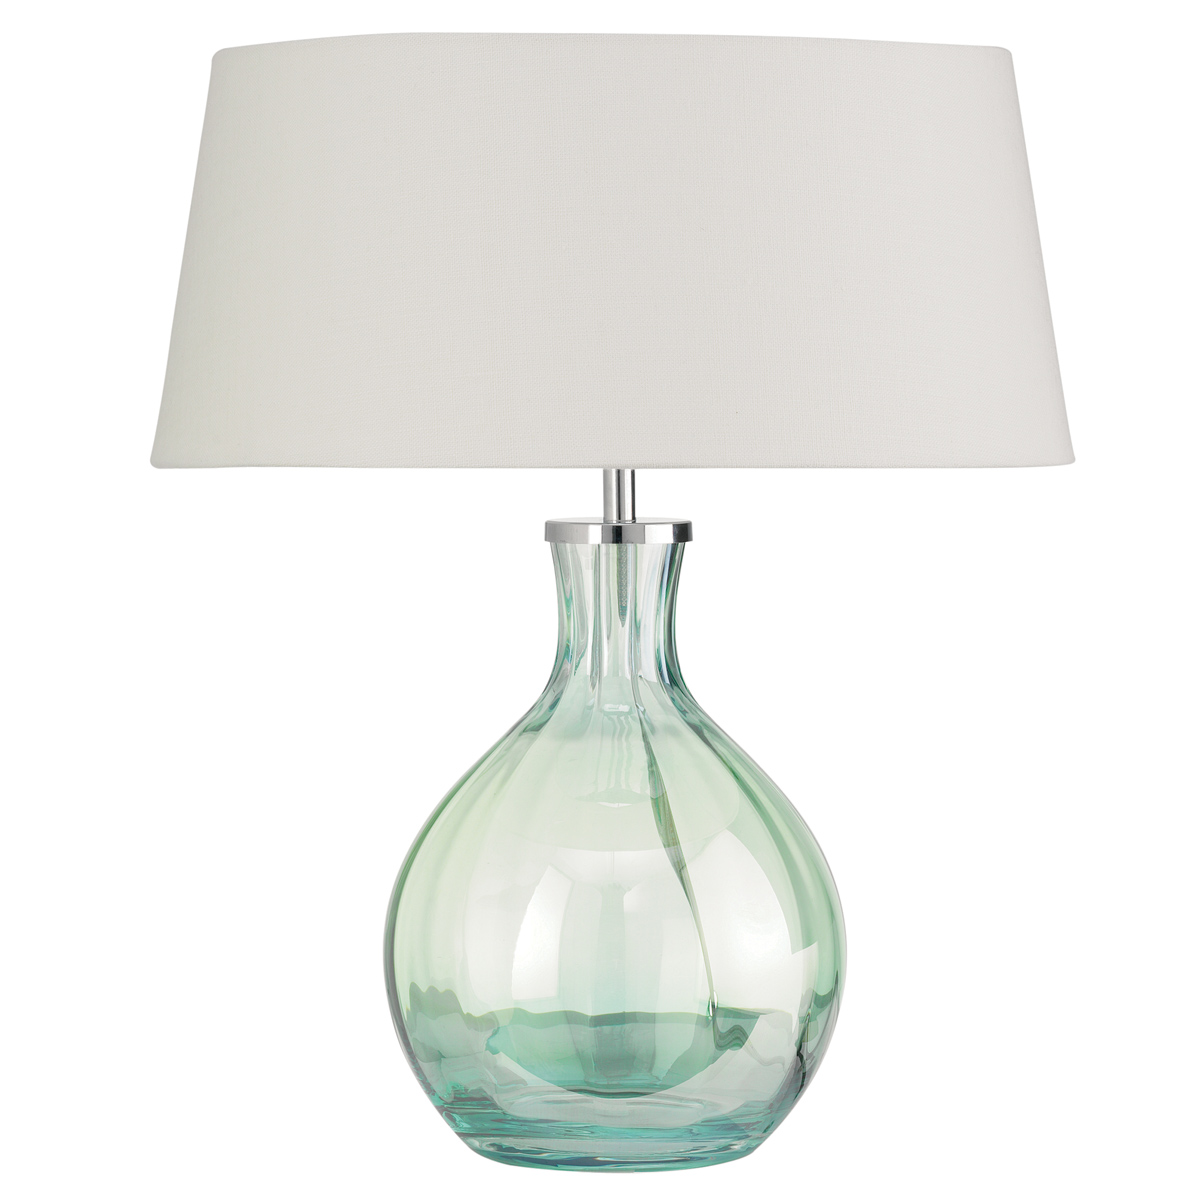 led table lamps crystal table lamps bedroom